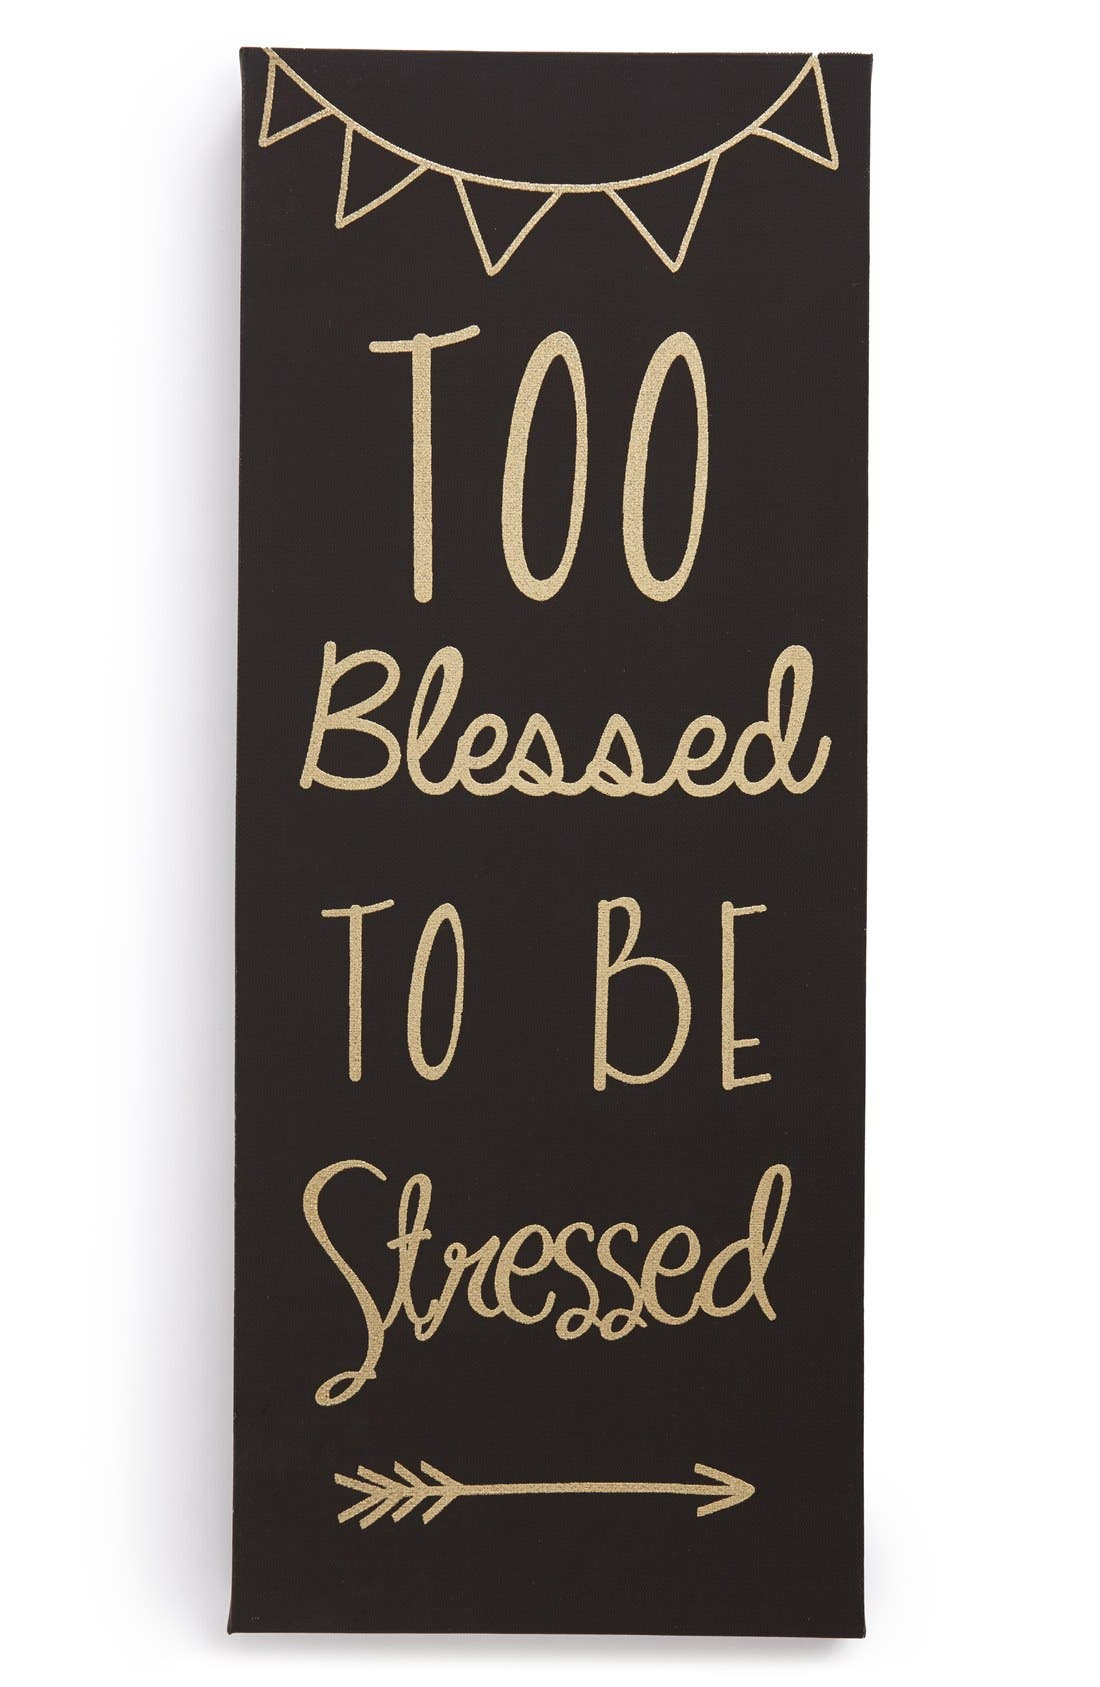 Alternate Image 1 Selected - Crystal Art Gallery 'Too Blessed' Wrapped Canvas Wall Art